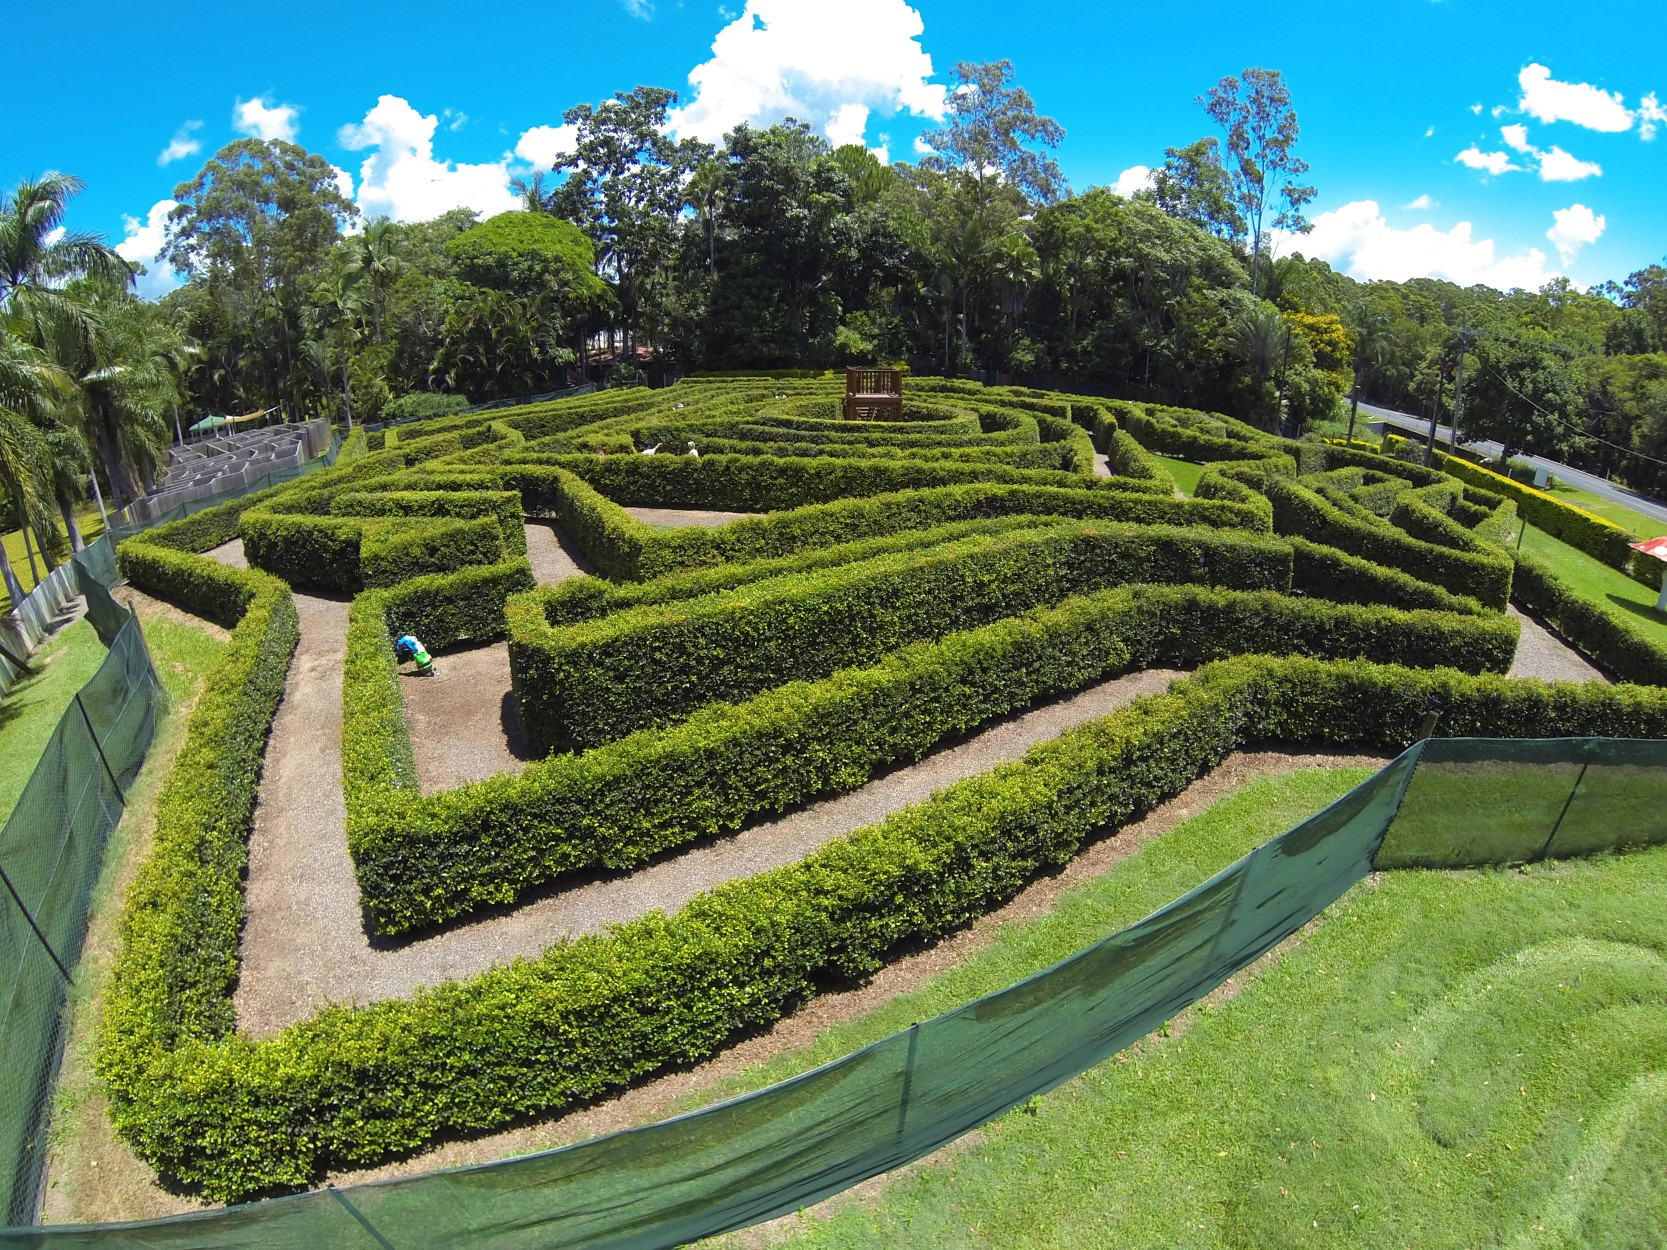 Bellingham Maze - Accommodation Resorts